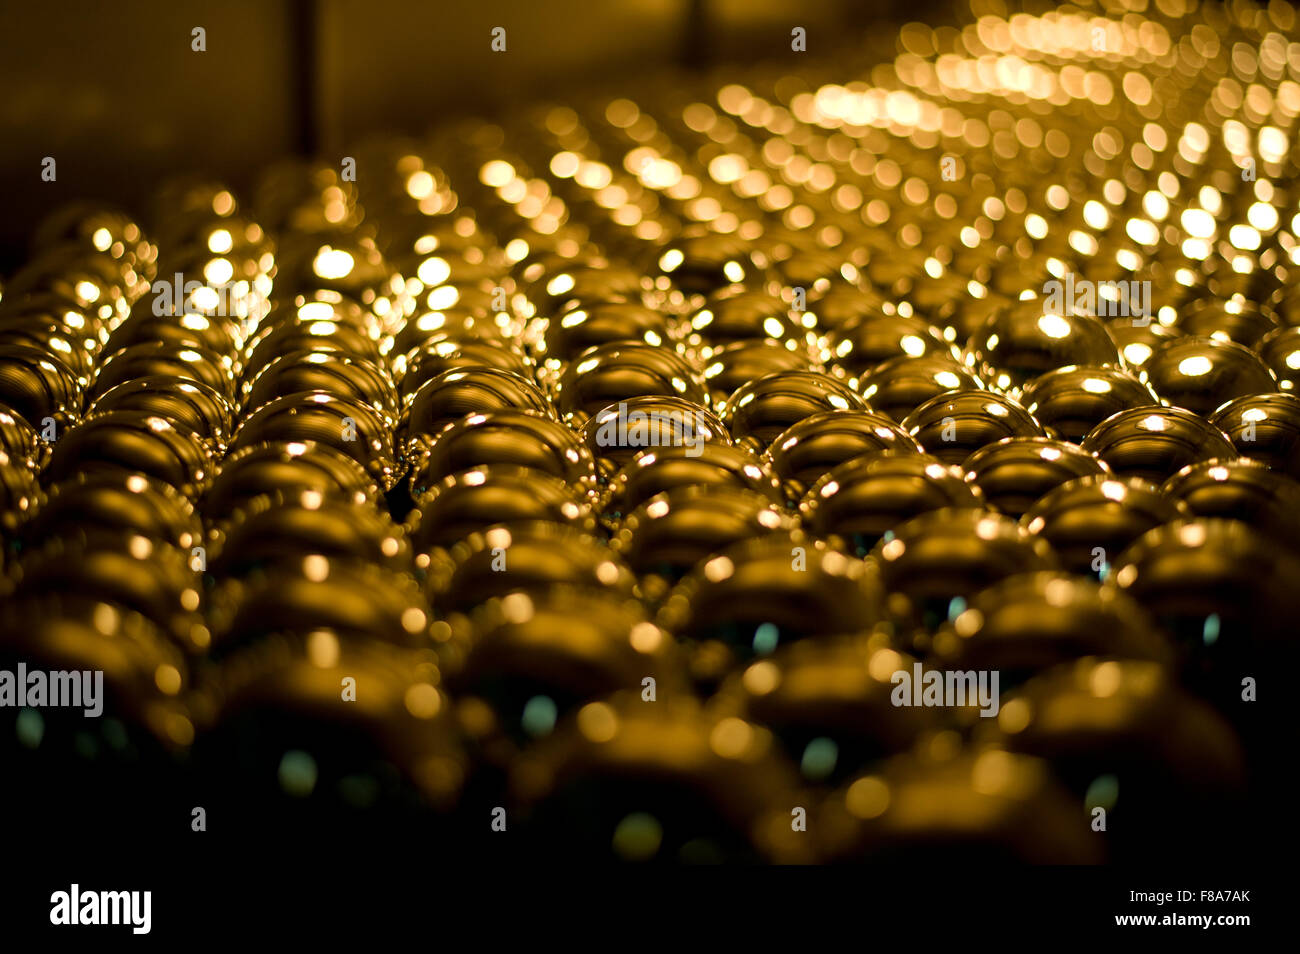 Piotrkow Trybunalski, Poland. 7th December, 2015. Silvered glass balls arranged and left to dry out in drying machine - Stock Image